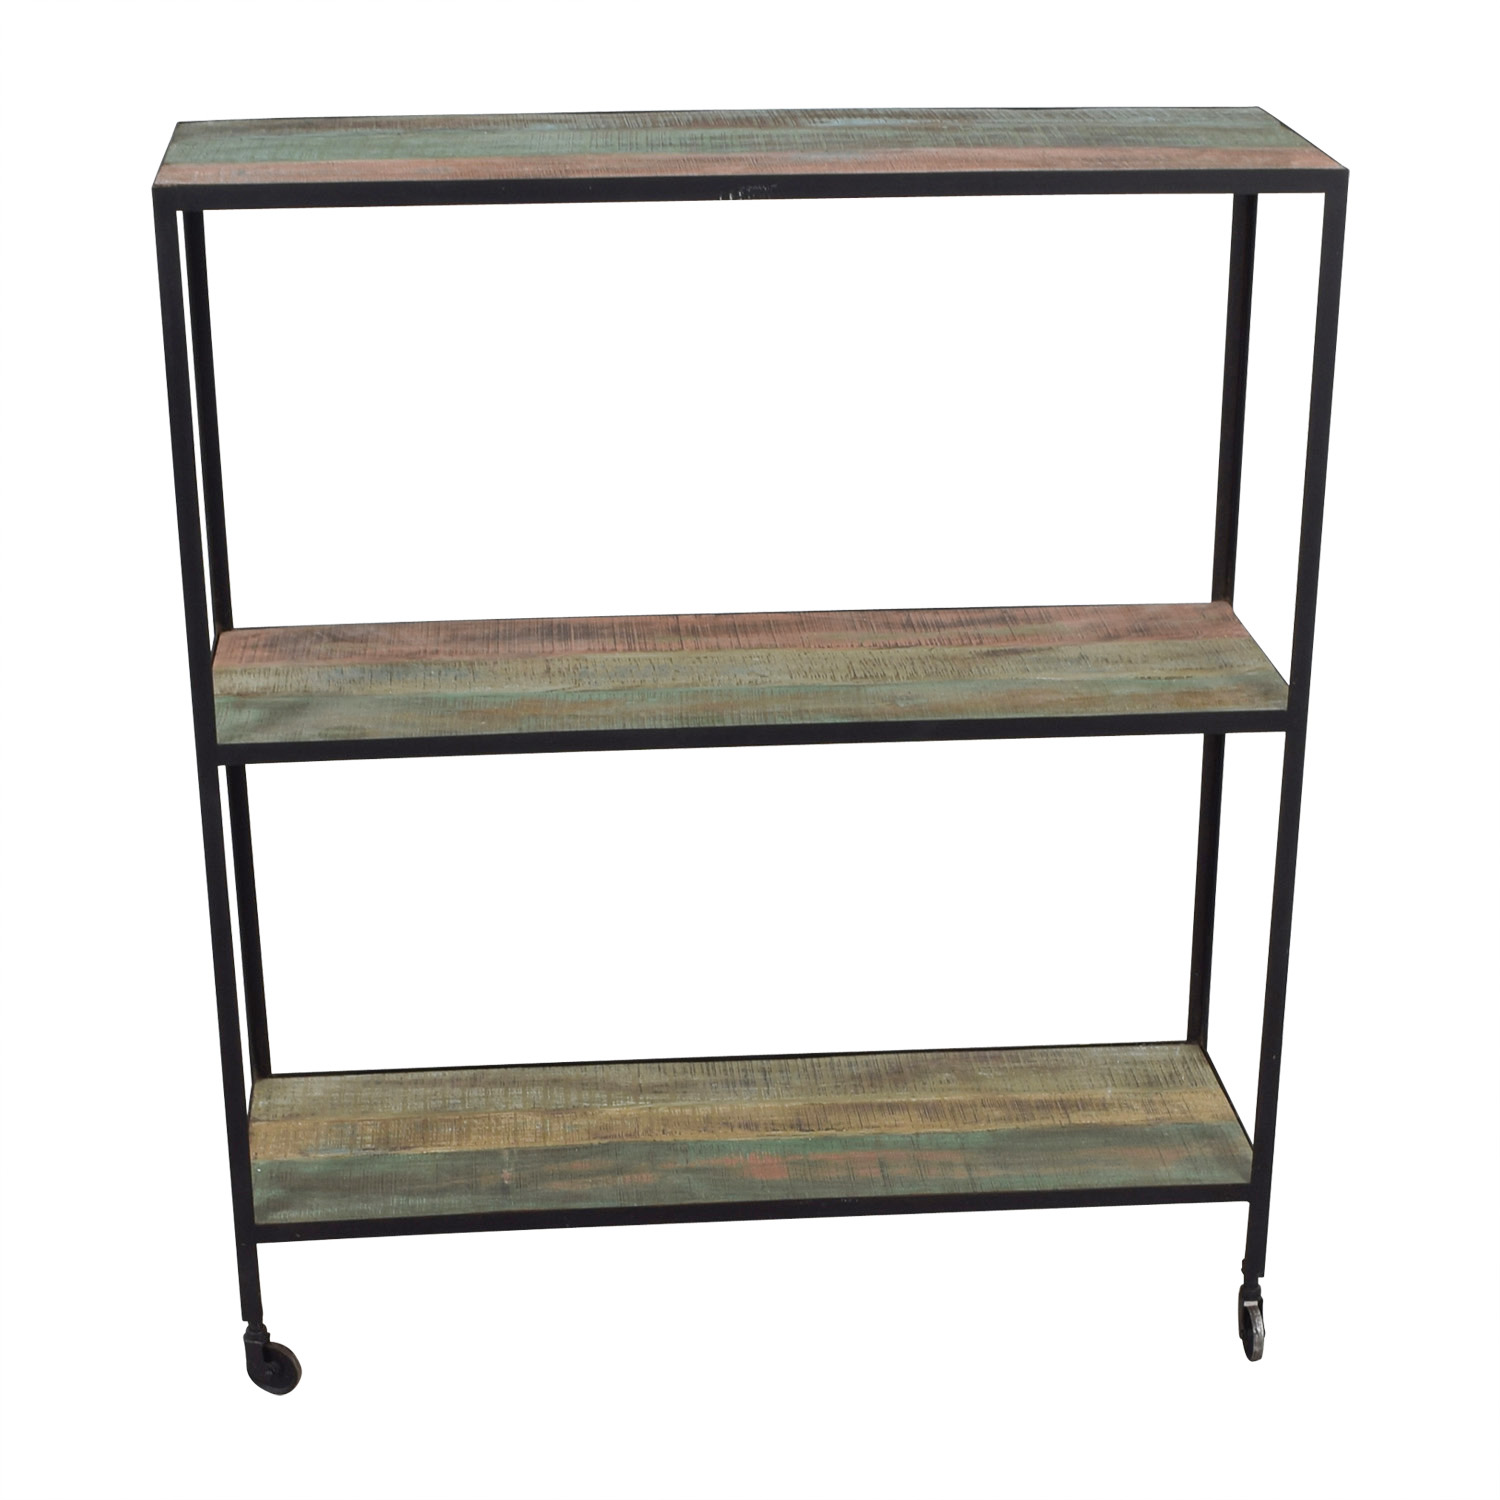 Nadeau Nadeau Rustic Three-Tier Shelf on Castors Bookcases & Shelving